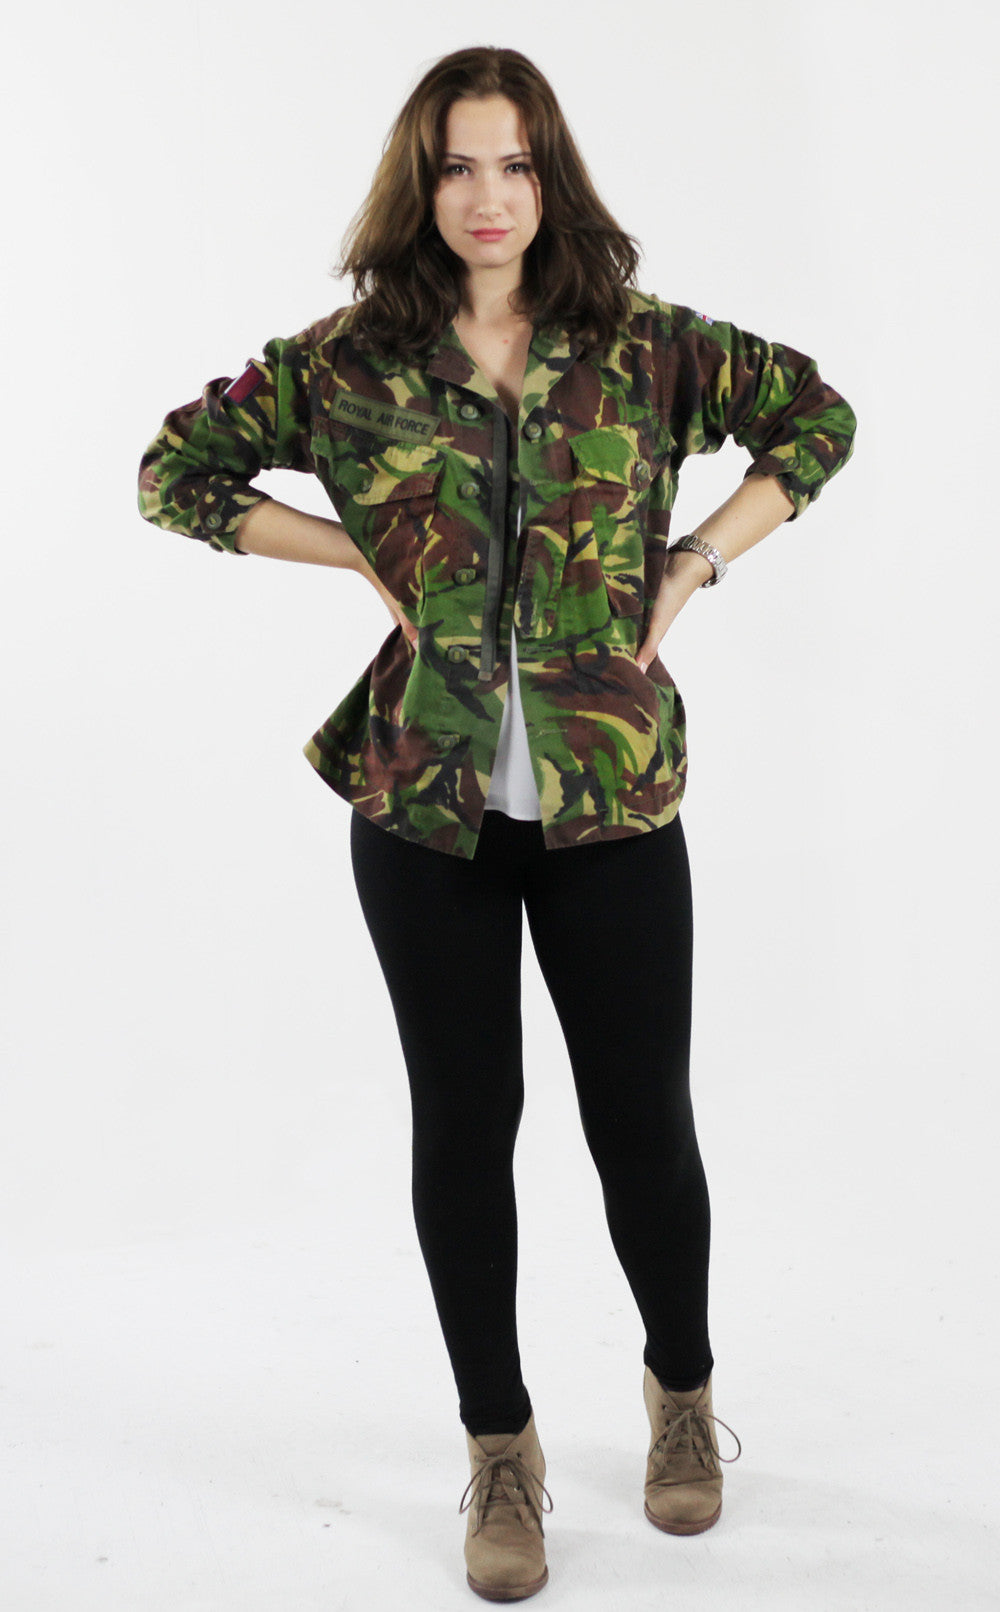 6ef3d687f13b1 Vintage Women's DPM Camo Shirt Jacket - Soldier 95 | Forces Uniform ...